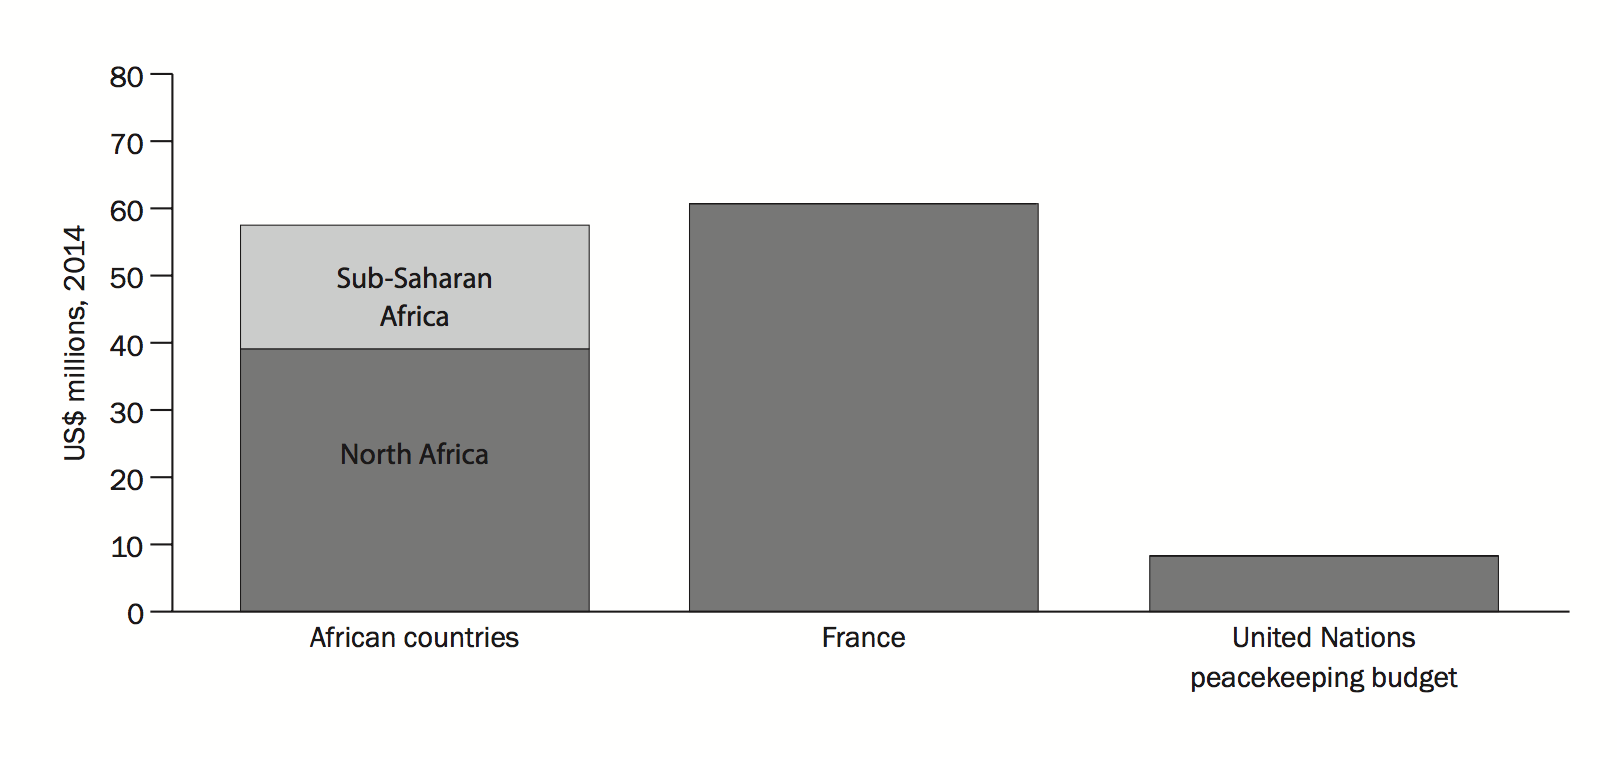 Figure 3. Military expenditure by African countries and France, compared to the United Nations peacekeeping budget, 2015.